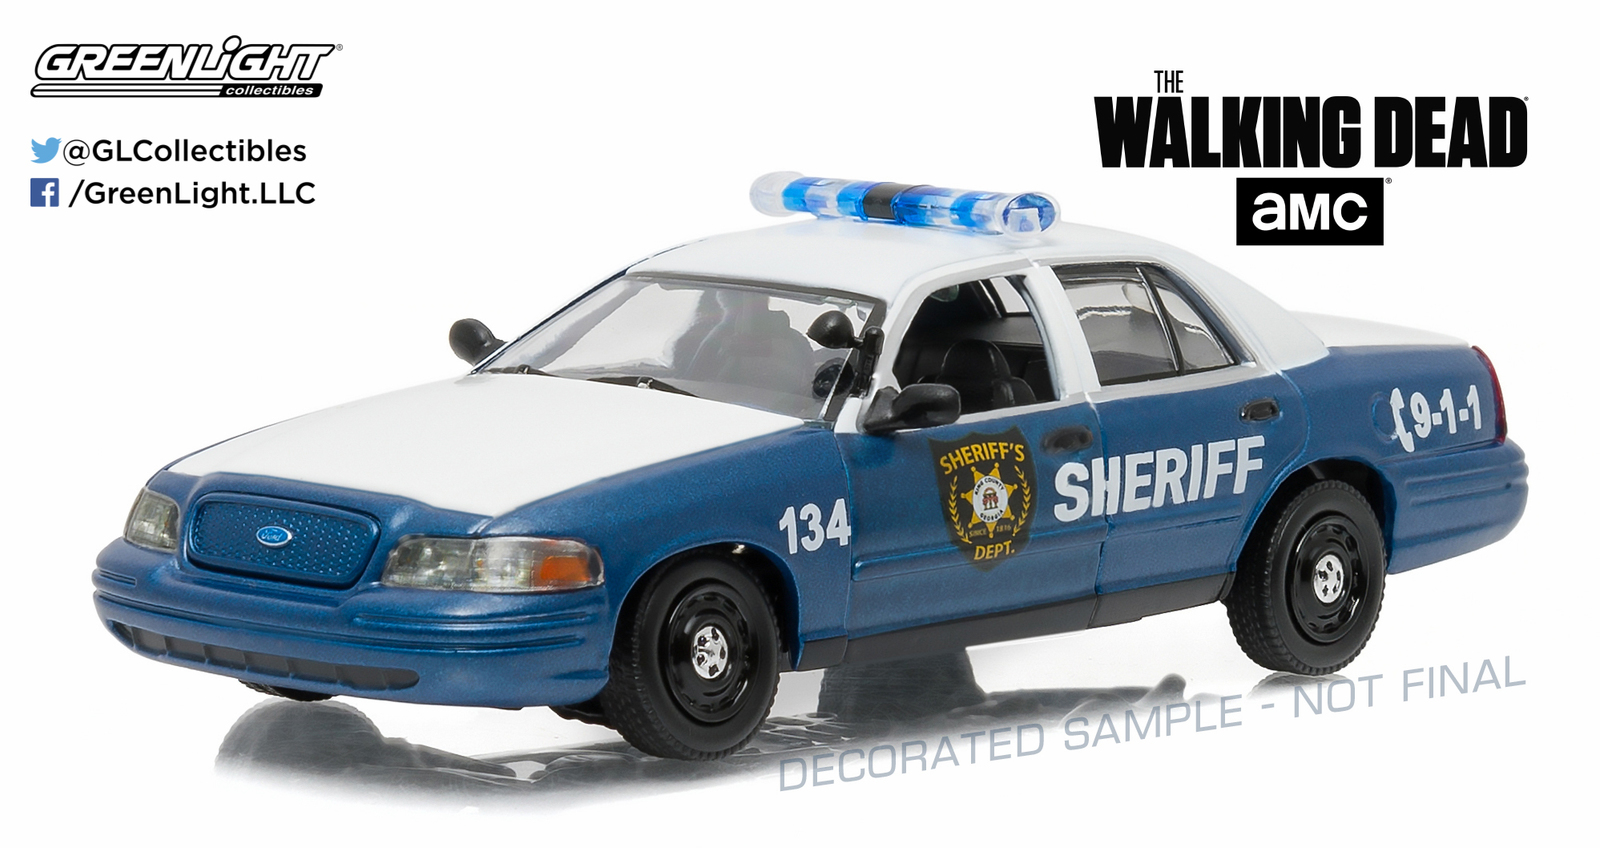 1/43: 2001 Ford Crown Victoria - Police - Diecast Model image